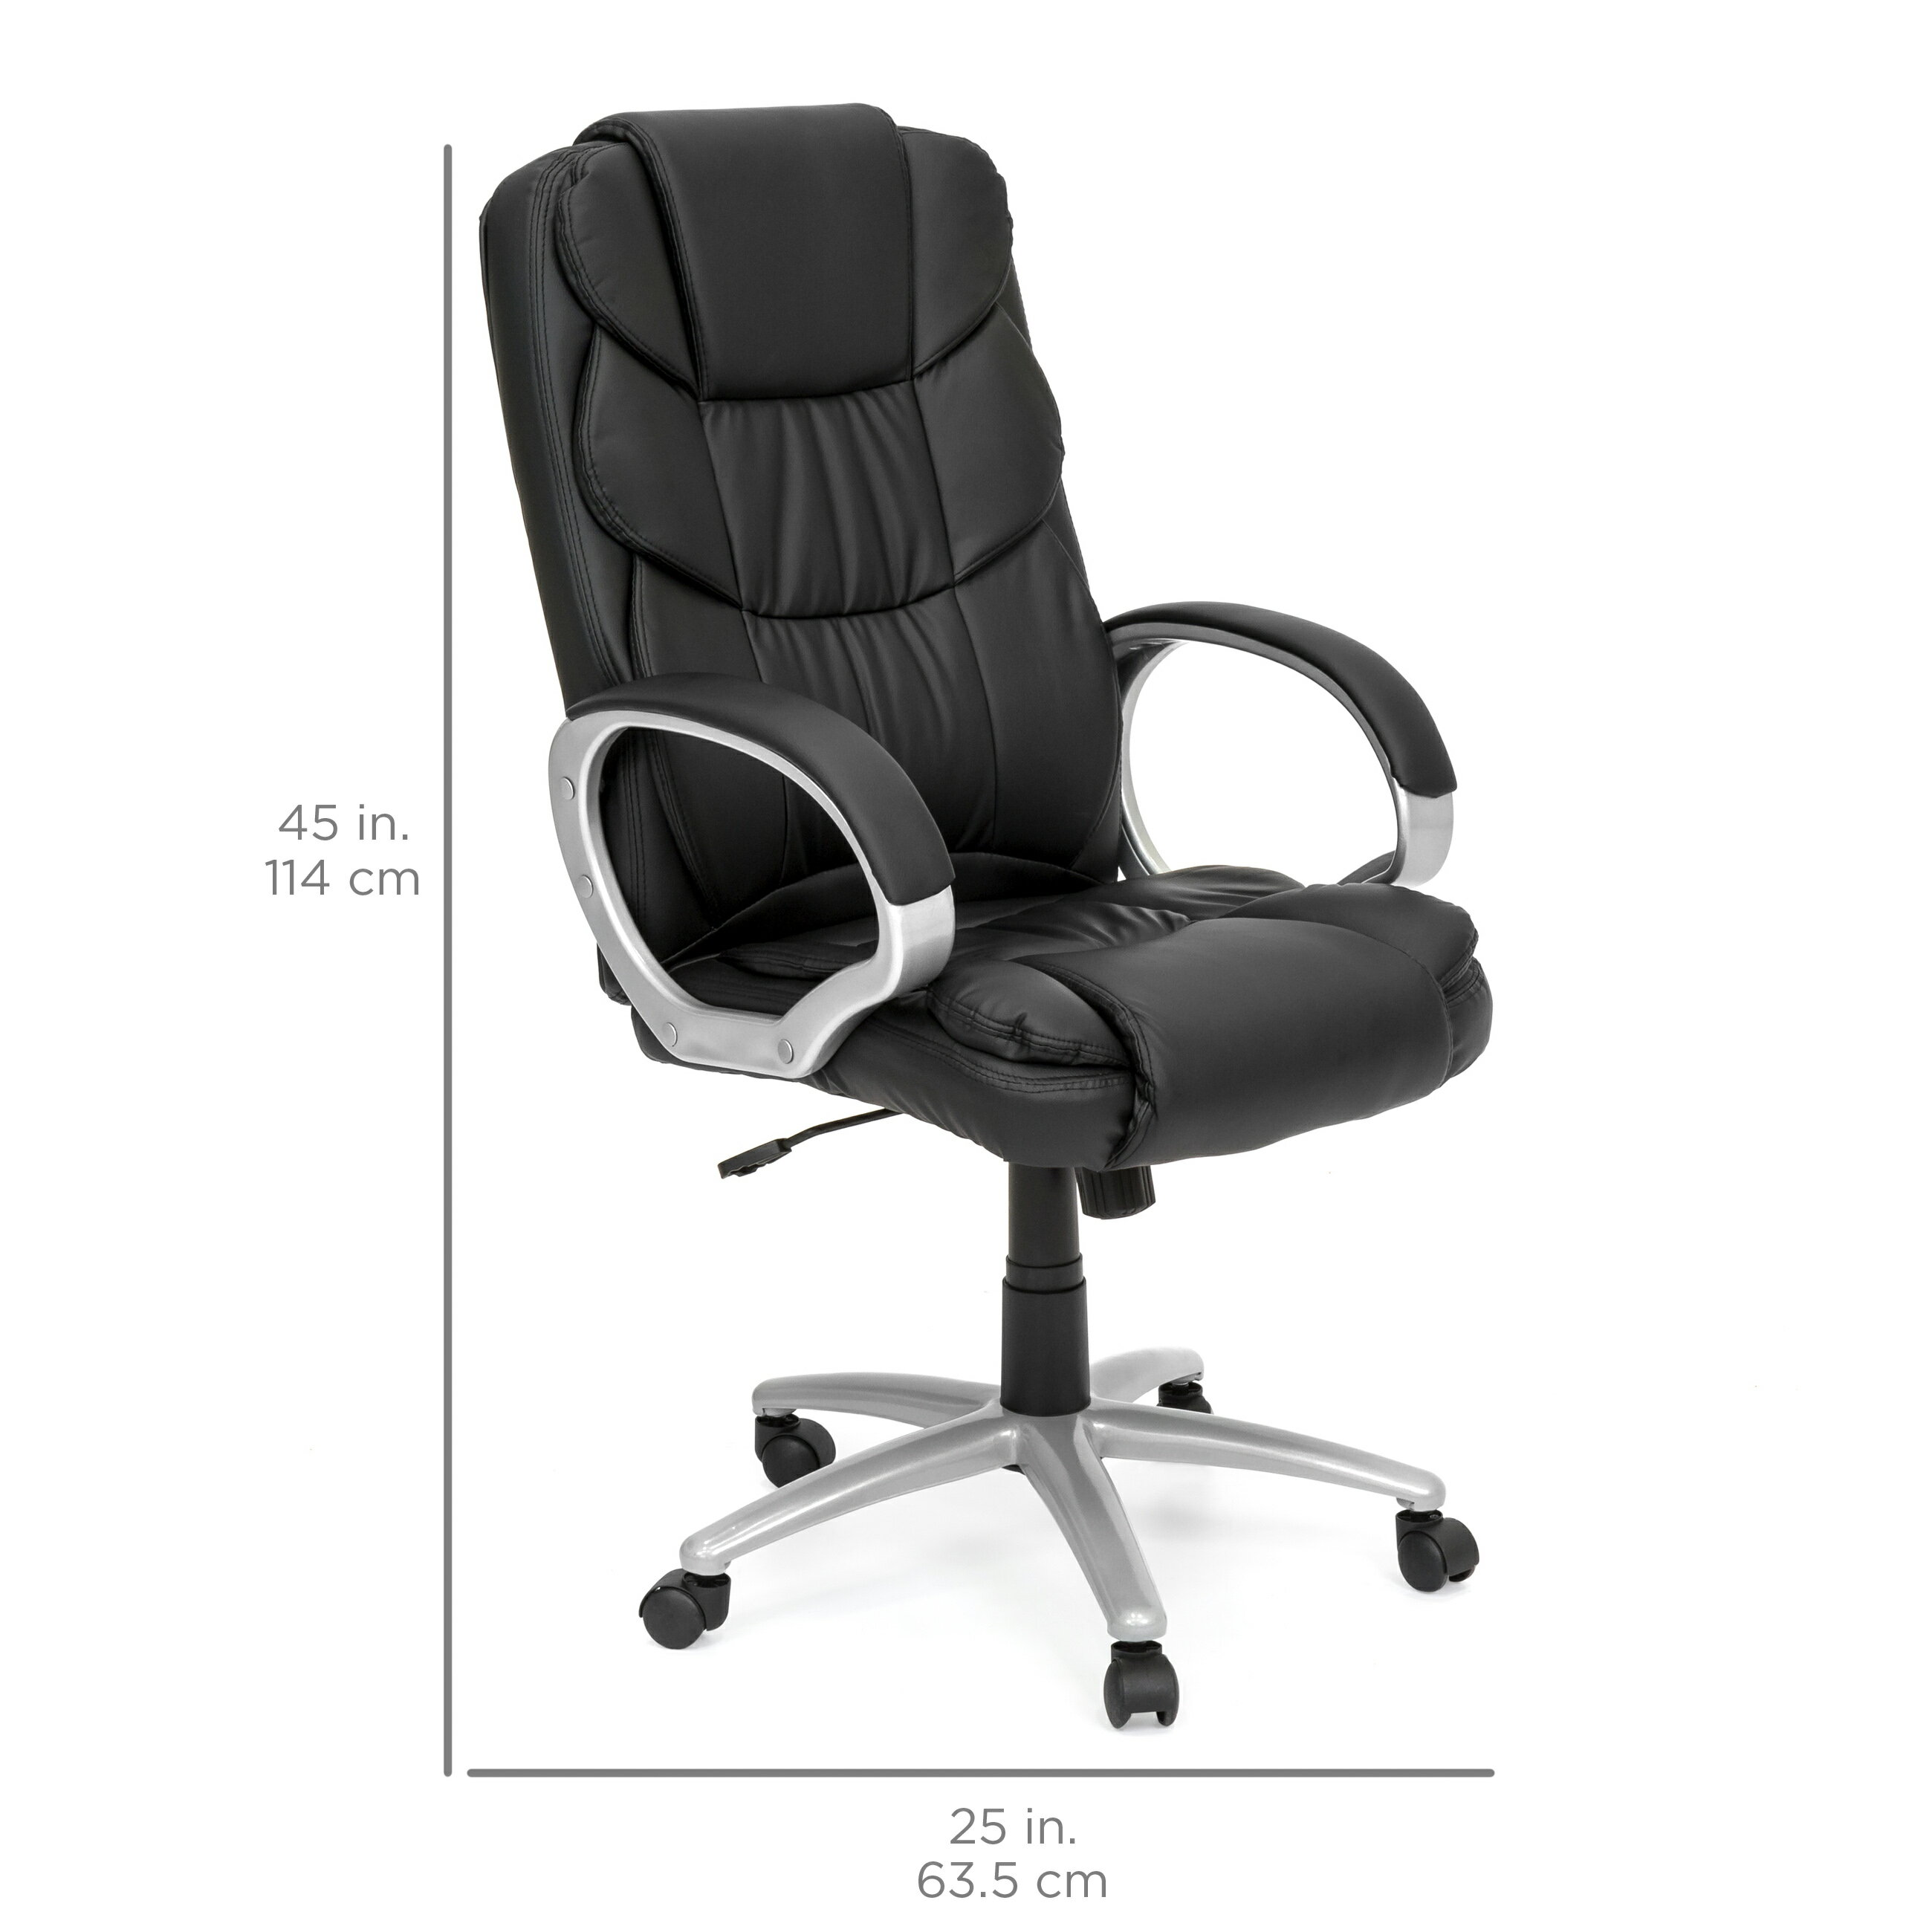 Best Choice Products Ergonomic PU Leather High Back Office Chair, Black 4